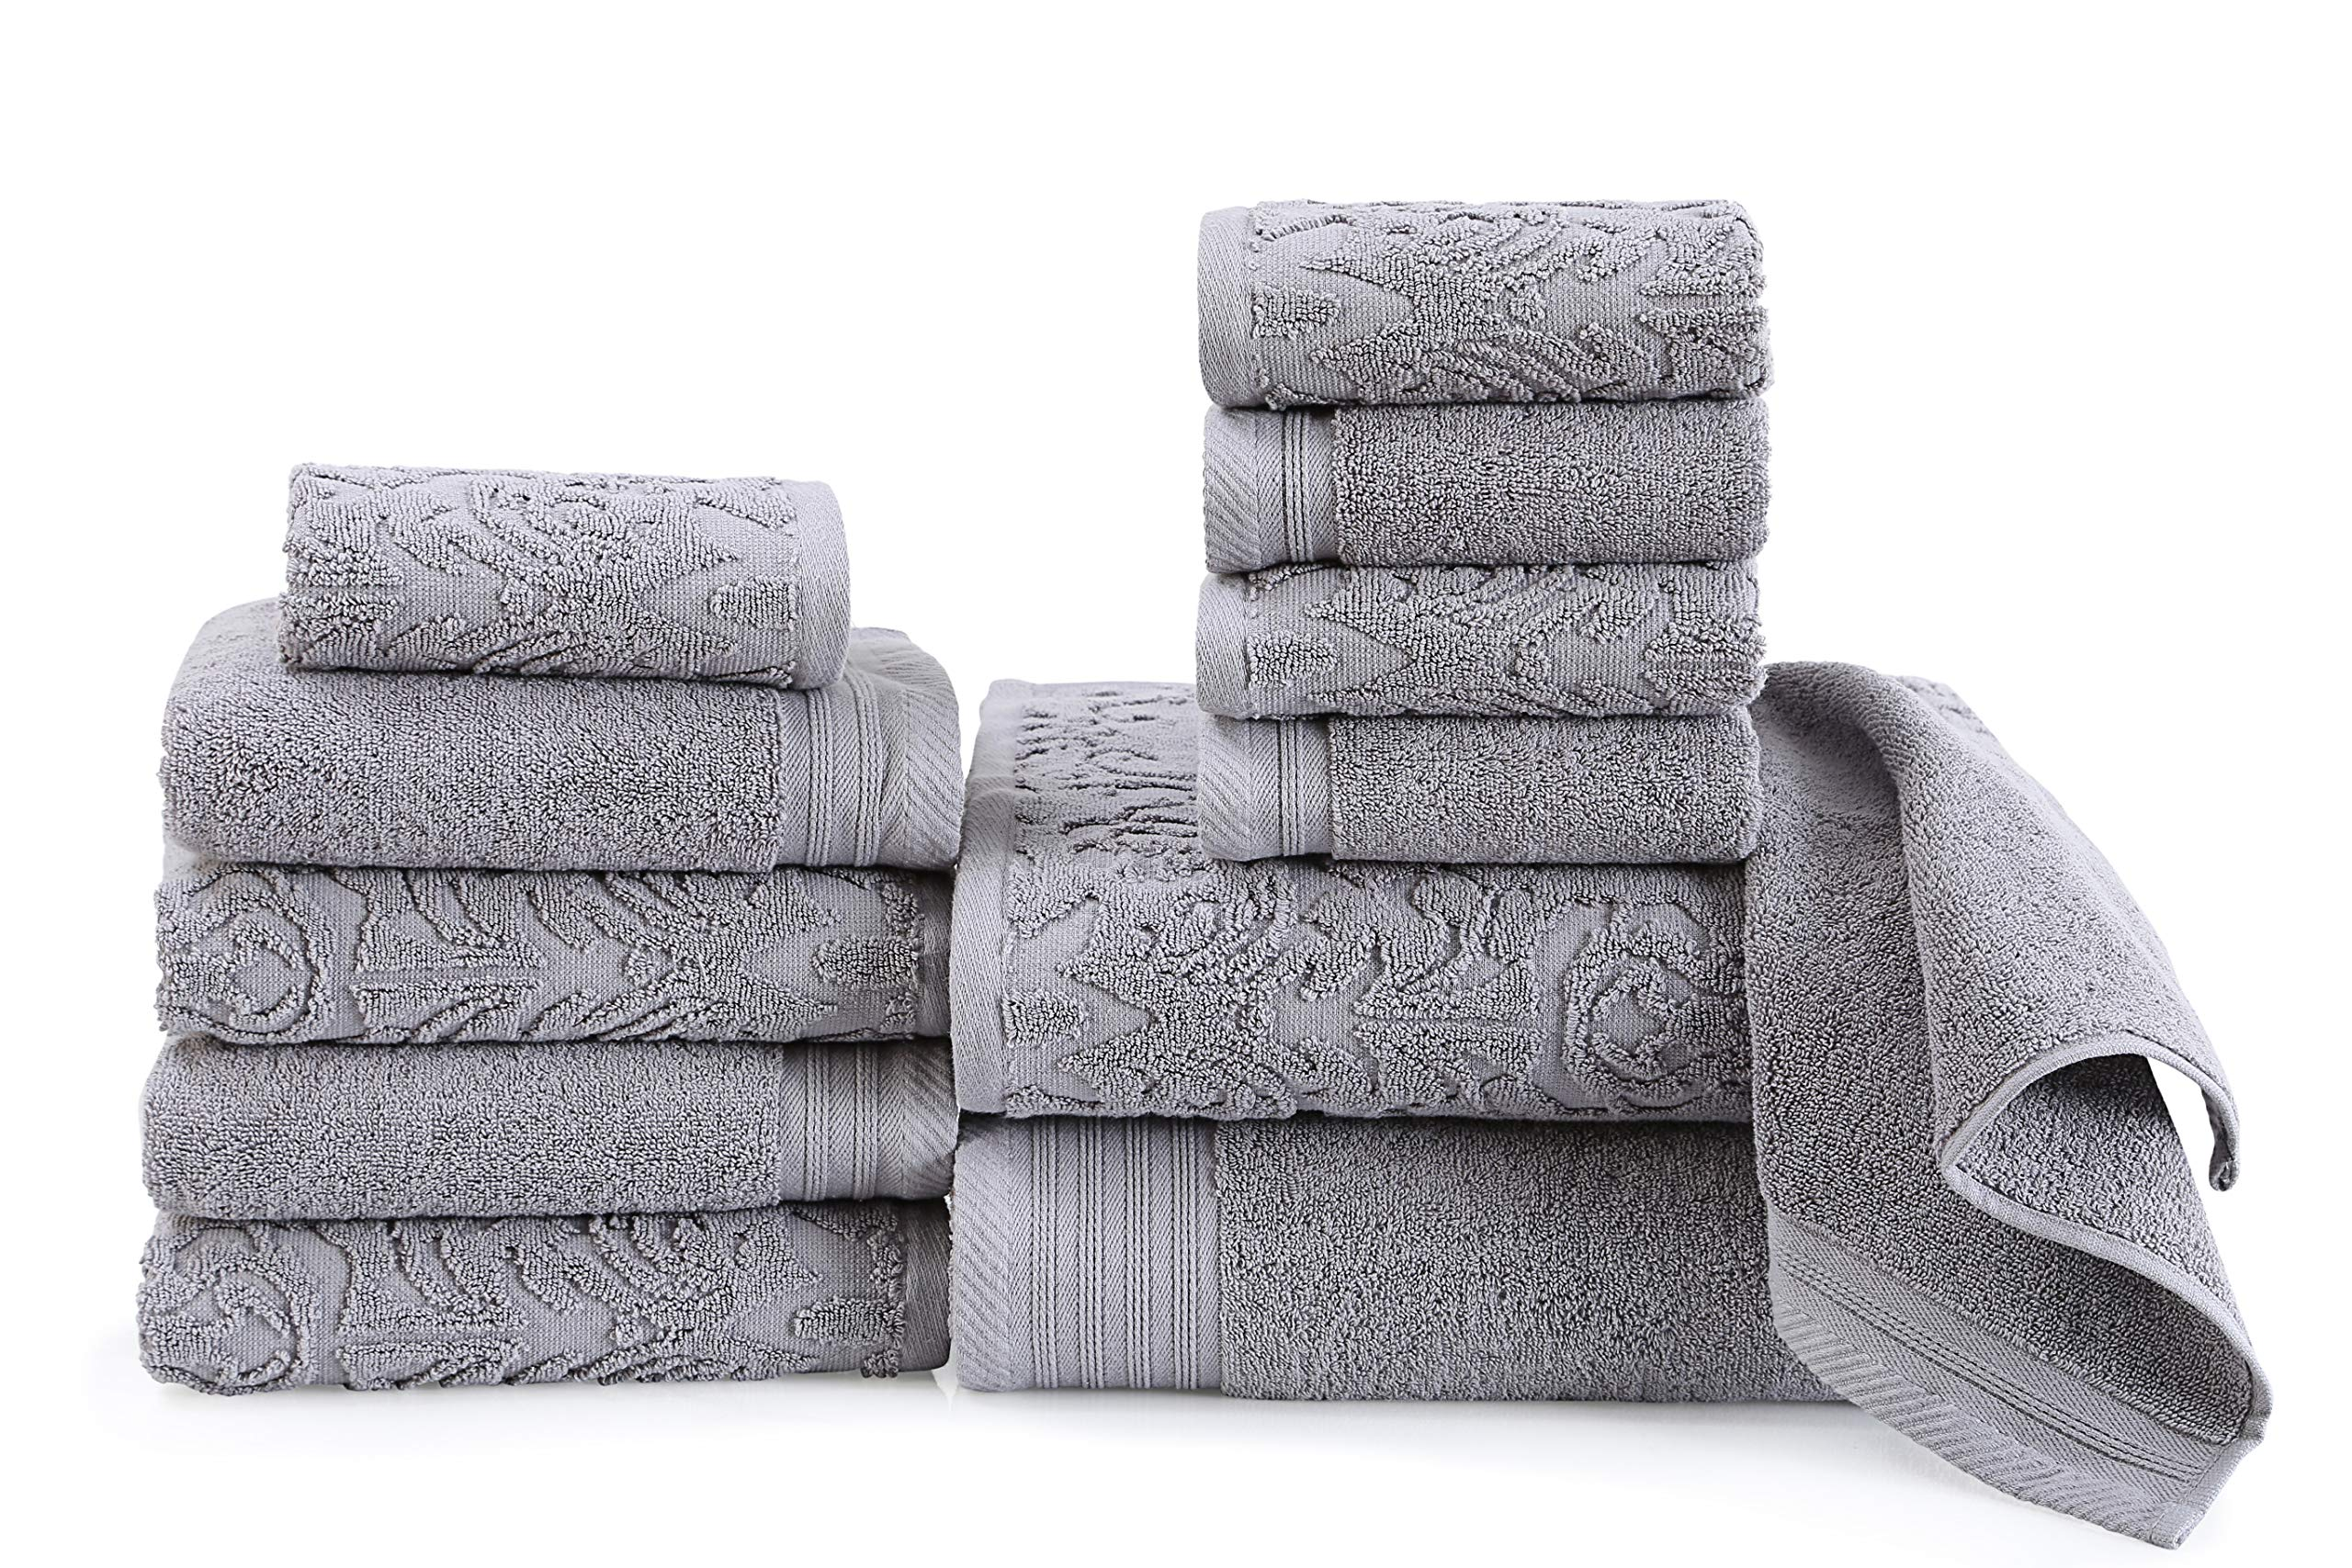 Wicker Park 600 GSM Ultra Soft Luxurious 12-Piece Towel Set (Grey): 2 Bath Towels, 4 Hand Towels, 6 Washcloths, Long-Staple Combed Cotton, Spa Hotel Quality, Super Absorbent, Machine Washable